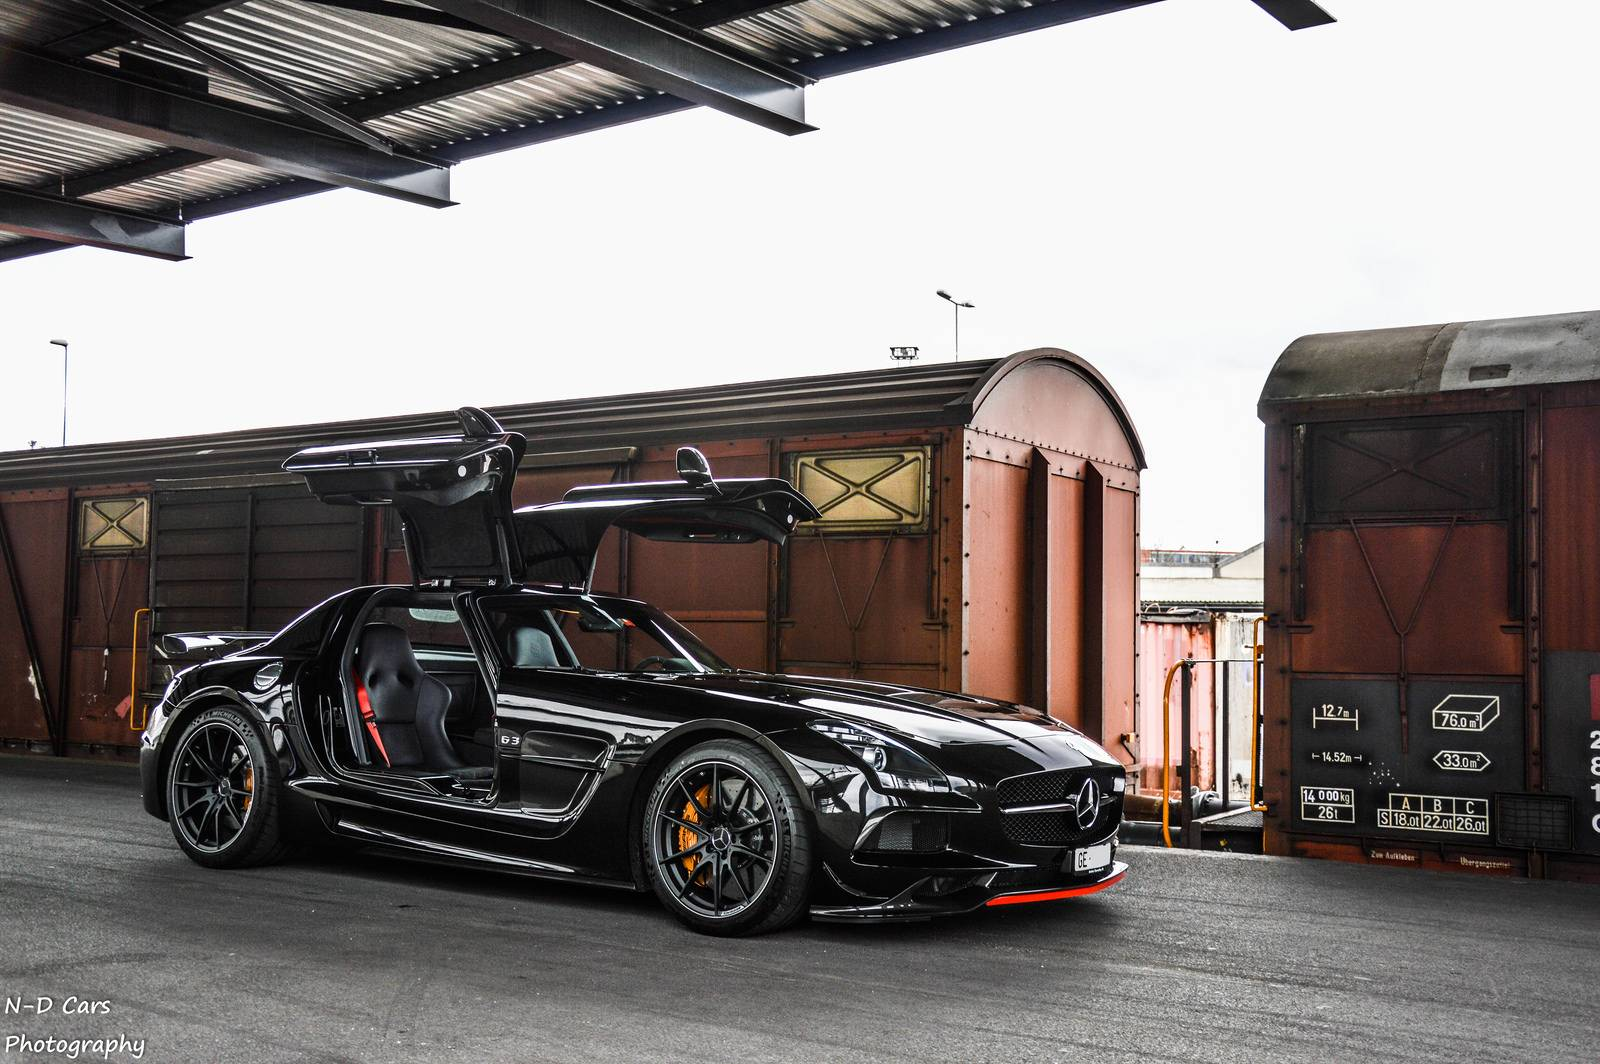 Black mercedes benz sls amg black series photoshoot gtspirit for Mercedes benz sls black series